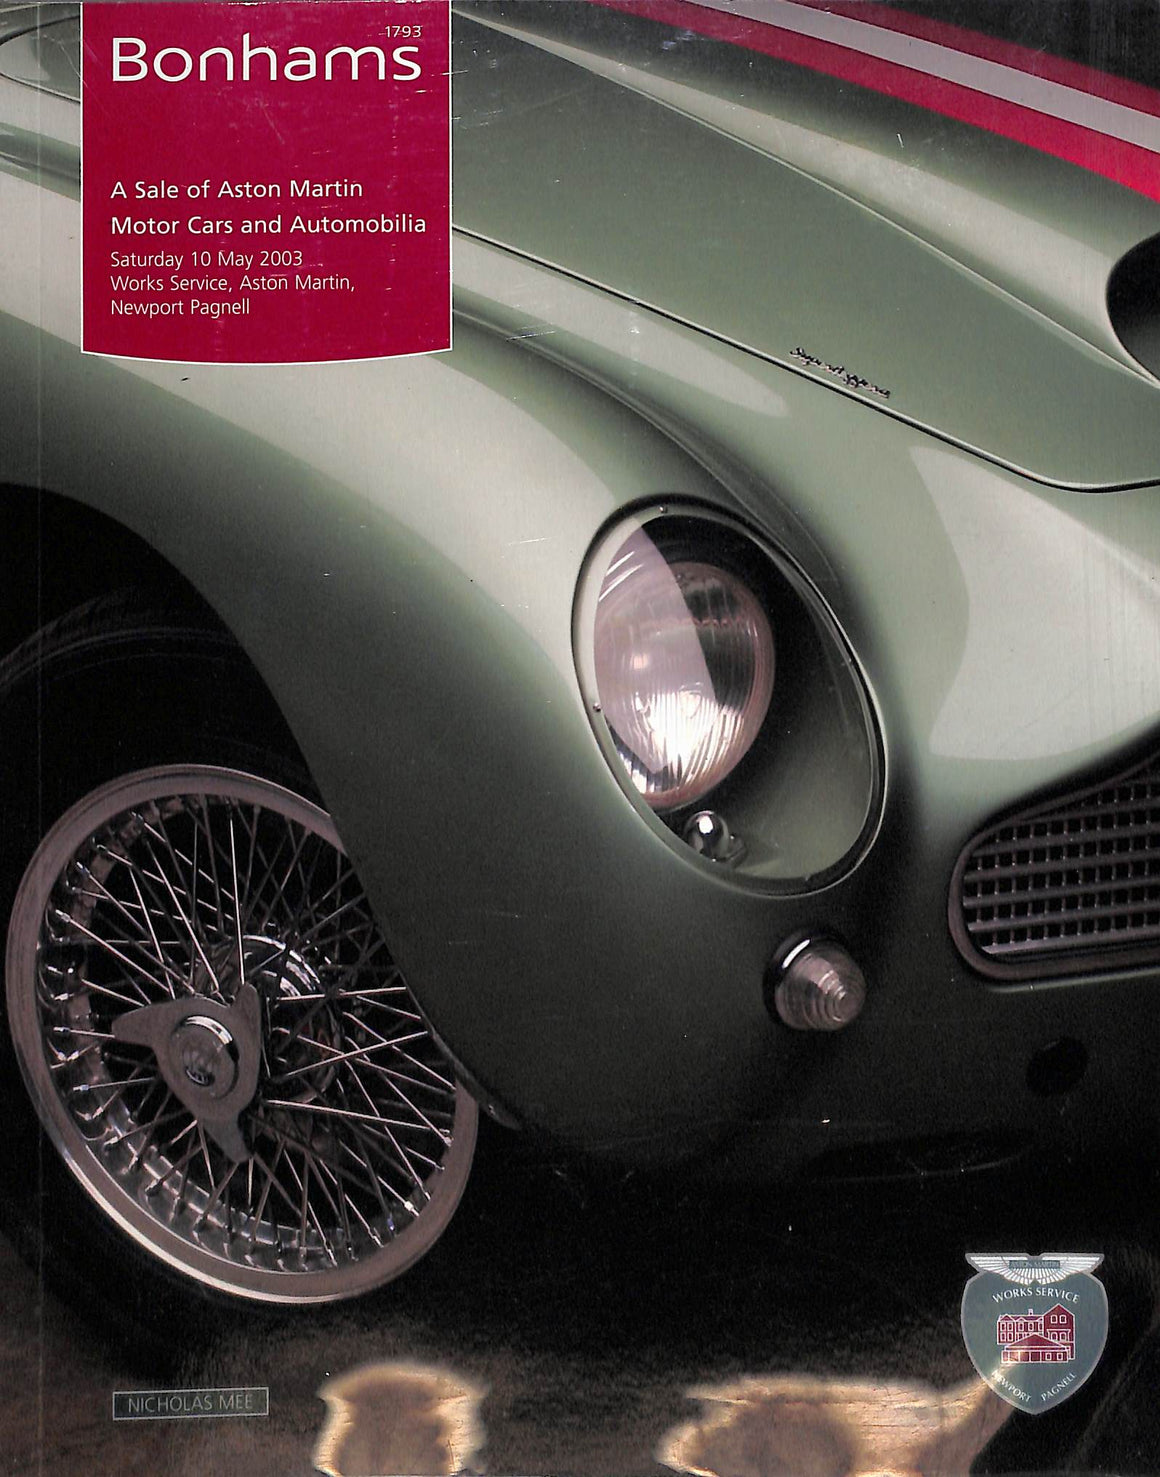 Bonhams 2003 A Sale of Aston Martin Motor Cars and Automobilia